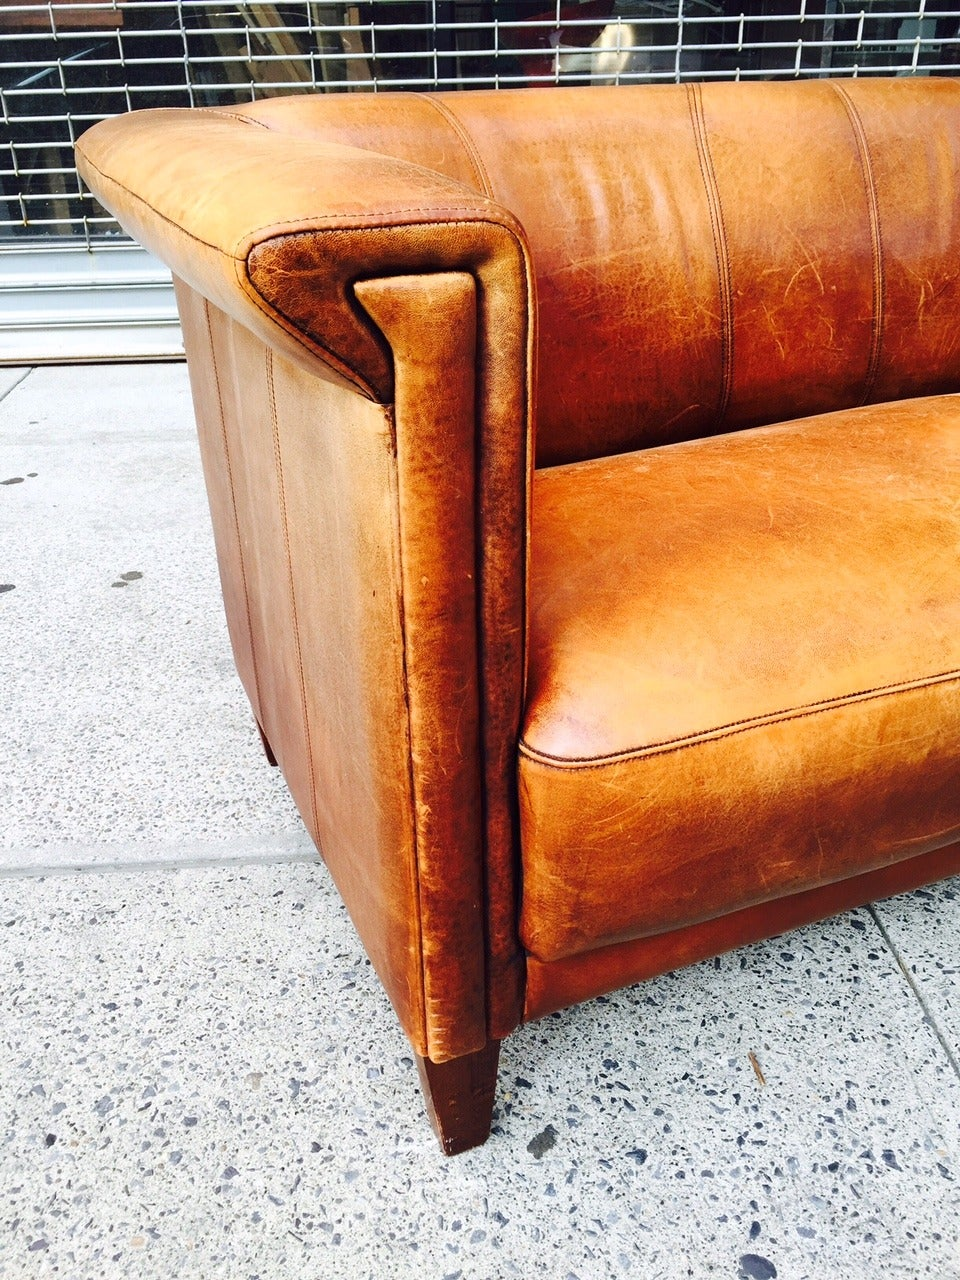 image of distressed leather sofa cleaner